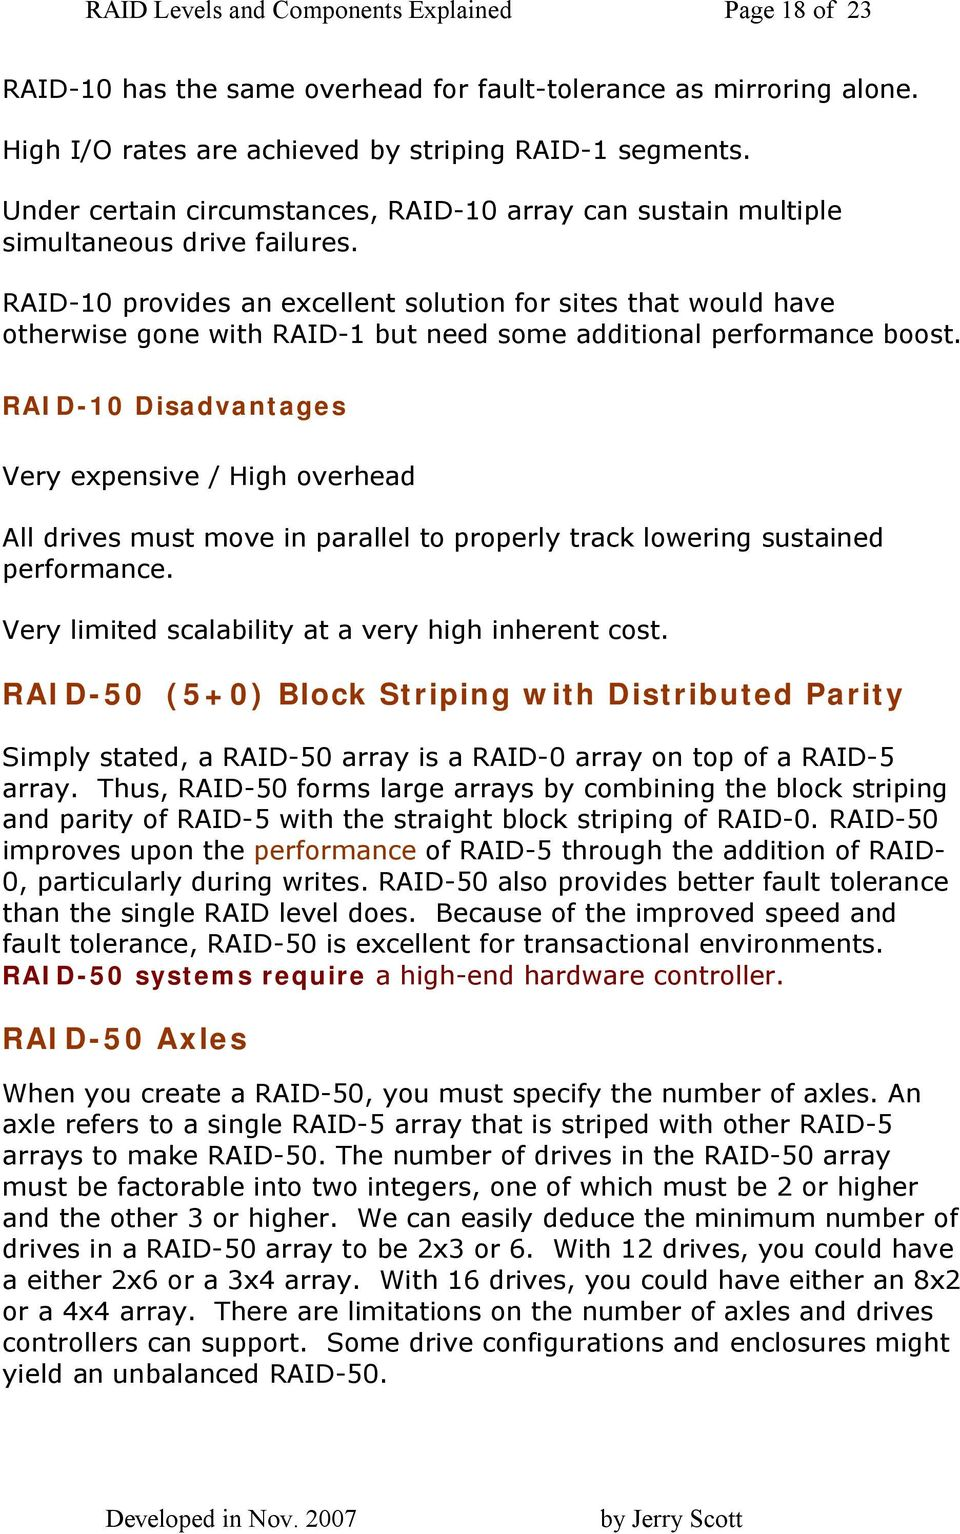 RAID-10 provides an excellent solution for sites that would have otherwise gone with RAID-1 but need some additional performance boost.